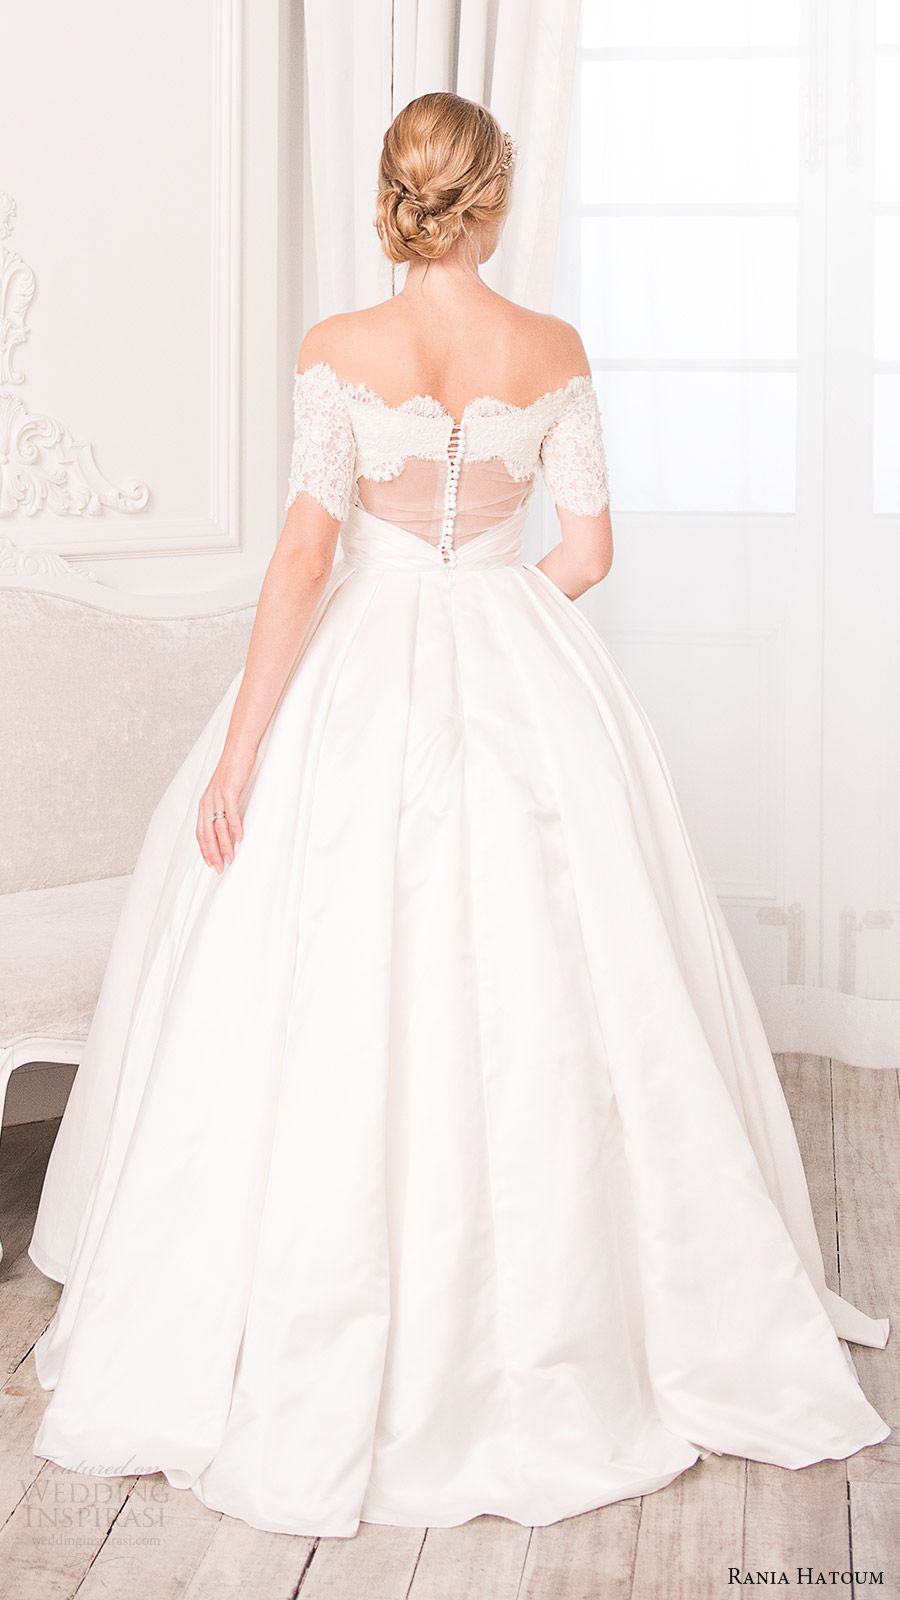 rania hatoum bridal spring 2017 half sleeves off shoulder ball gown wedding dress (inaa) bv